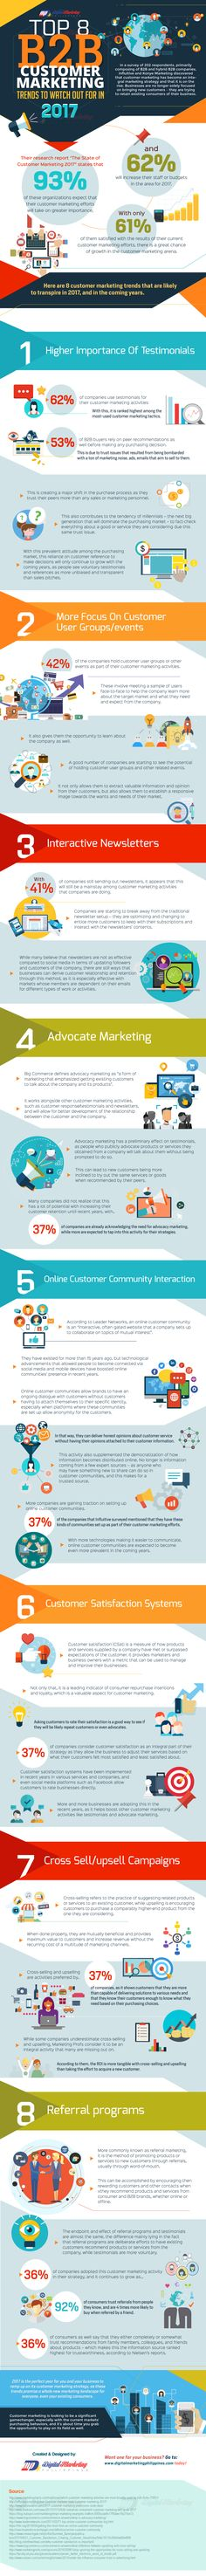 Business infographic & data visualisation Customer Marketing: 8 Ways to Grow Your Business Using Existing Customers - Infographic Source - Marketing Services, Marketing Plan, Sales And Marketing, Inbound Marketing, Marketing And Advertising, Business Marketing, Internet Marketing, Online Marketing, Social Media Marketing